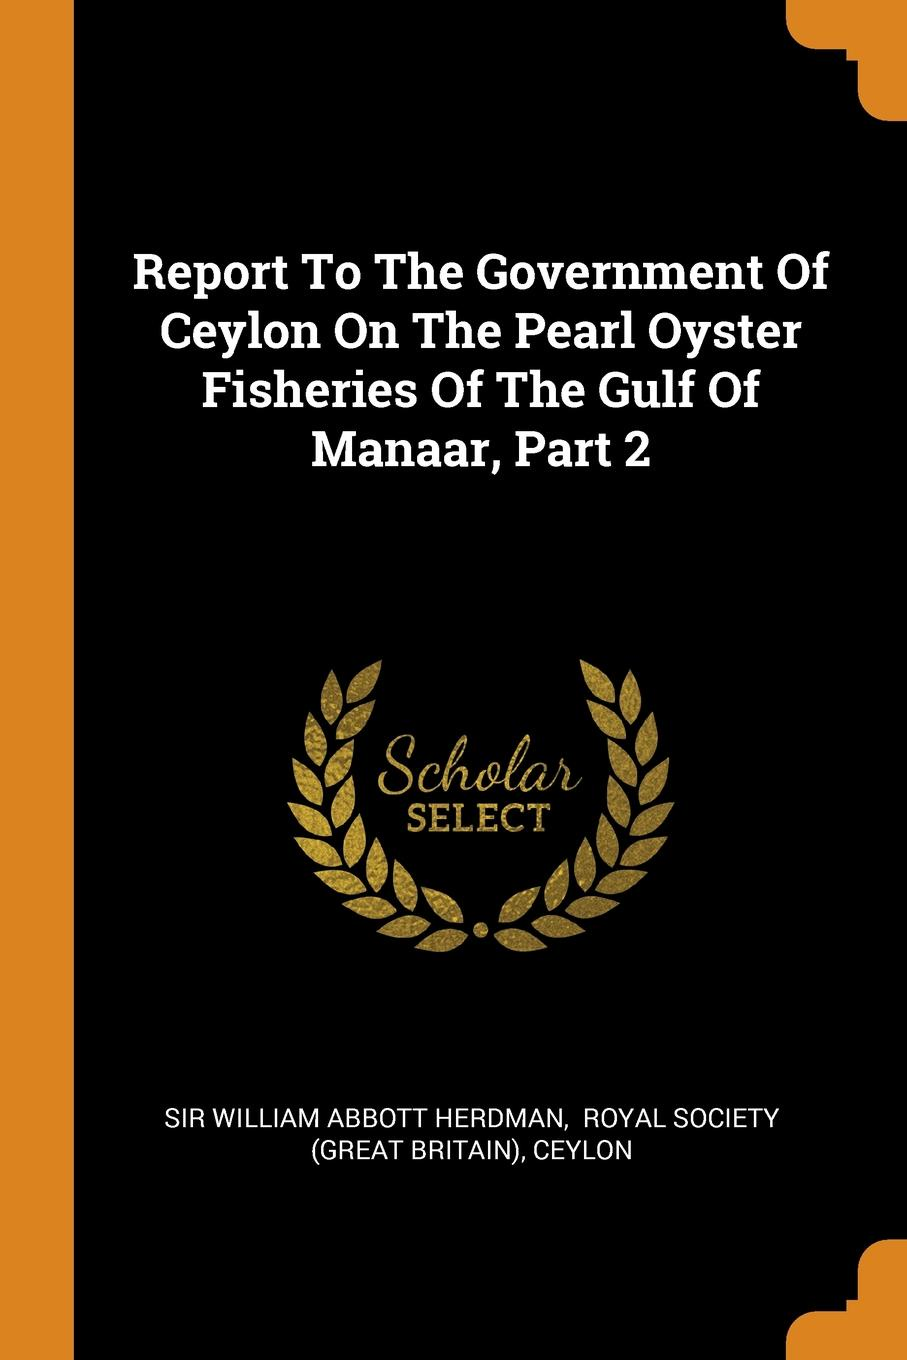 Ceylon Report To The Government Of Ceylon On The Pearl Oyster Fisheries Of The Gulf Of Manaar, Part 2